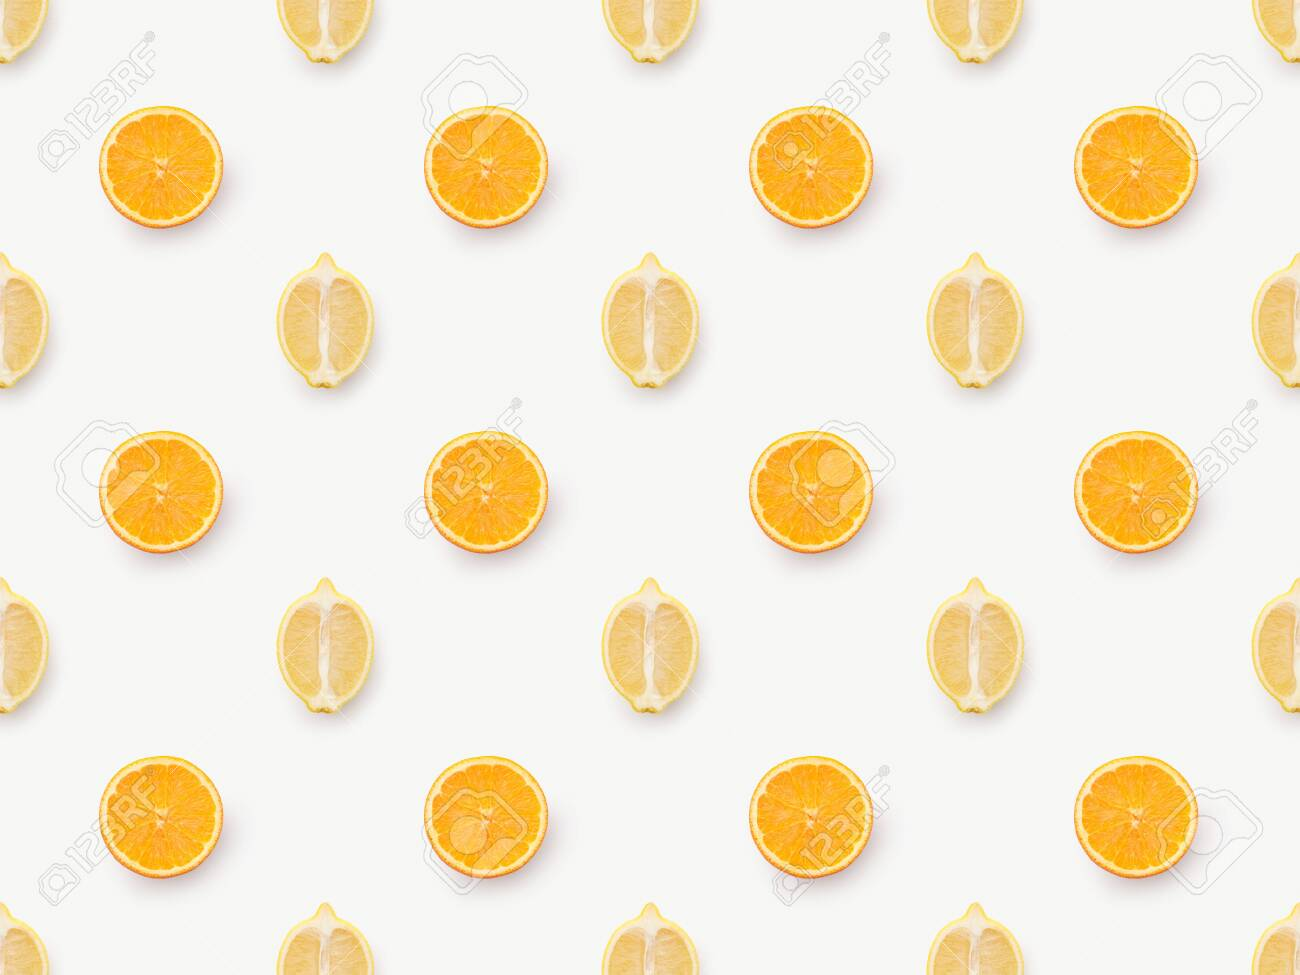 Top view of orange slices and lemons halves on white background - 141262168